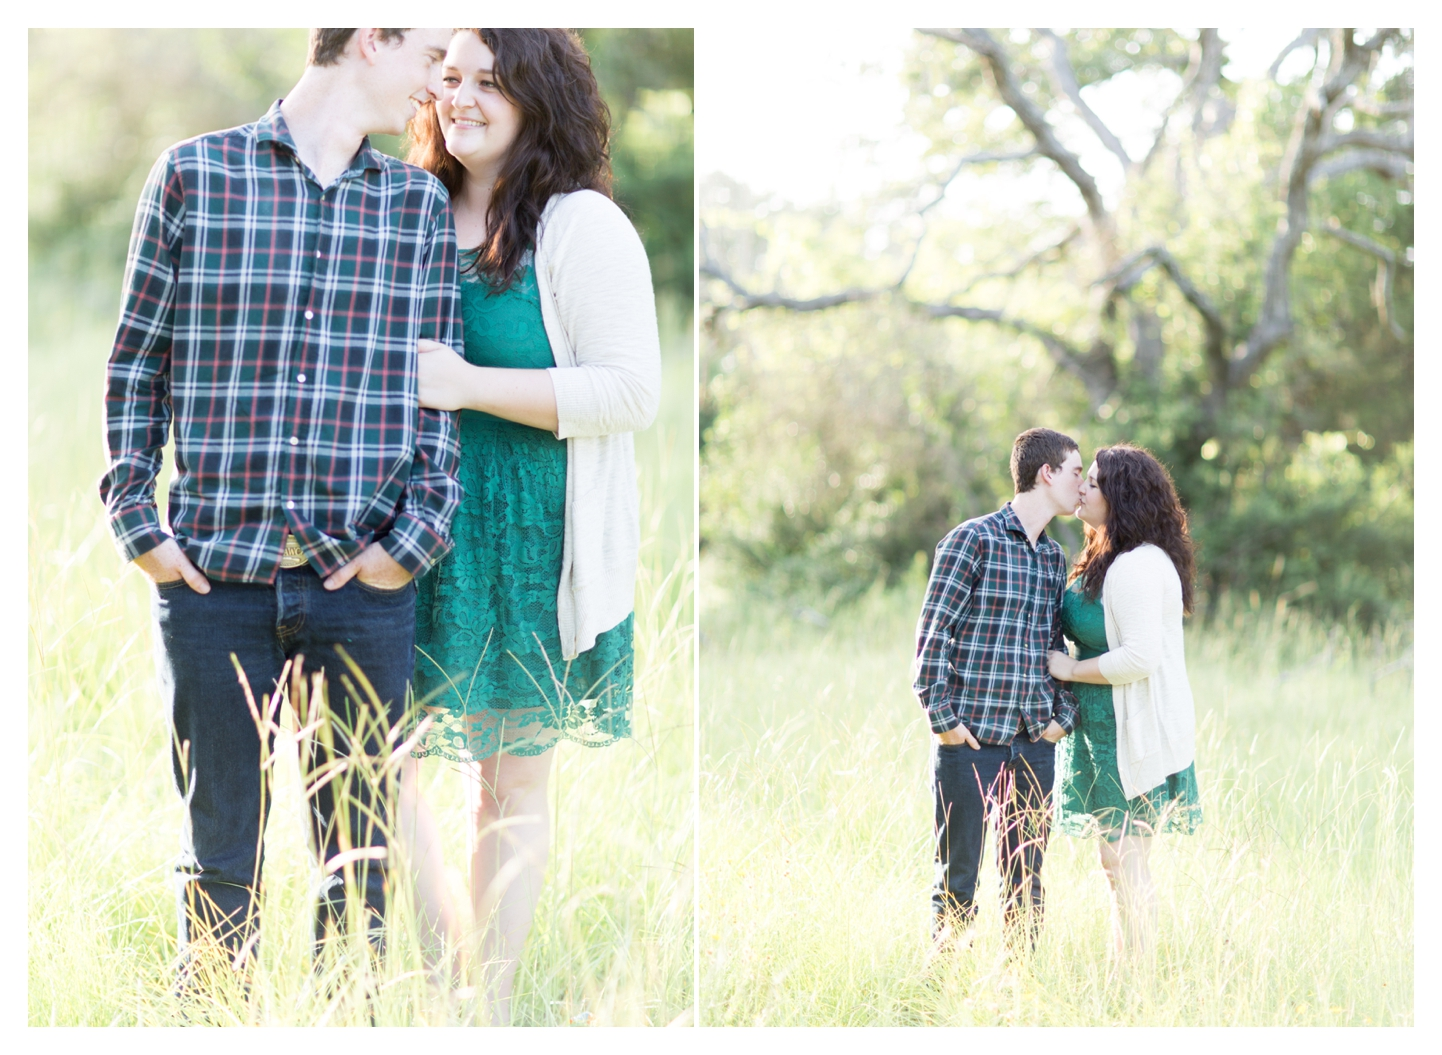 Joe+Elizabeth Tx Engagements-37.jpg